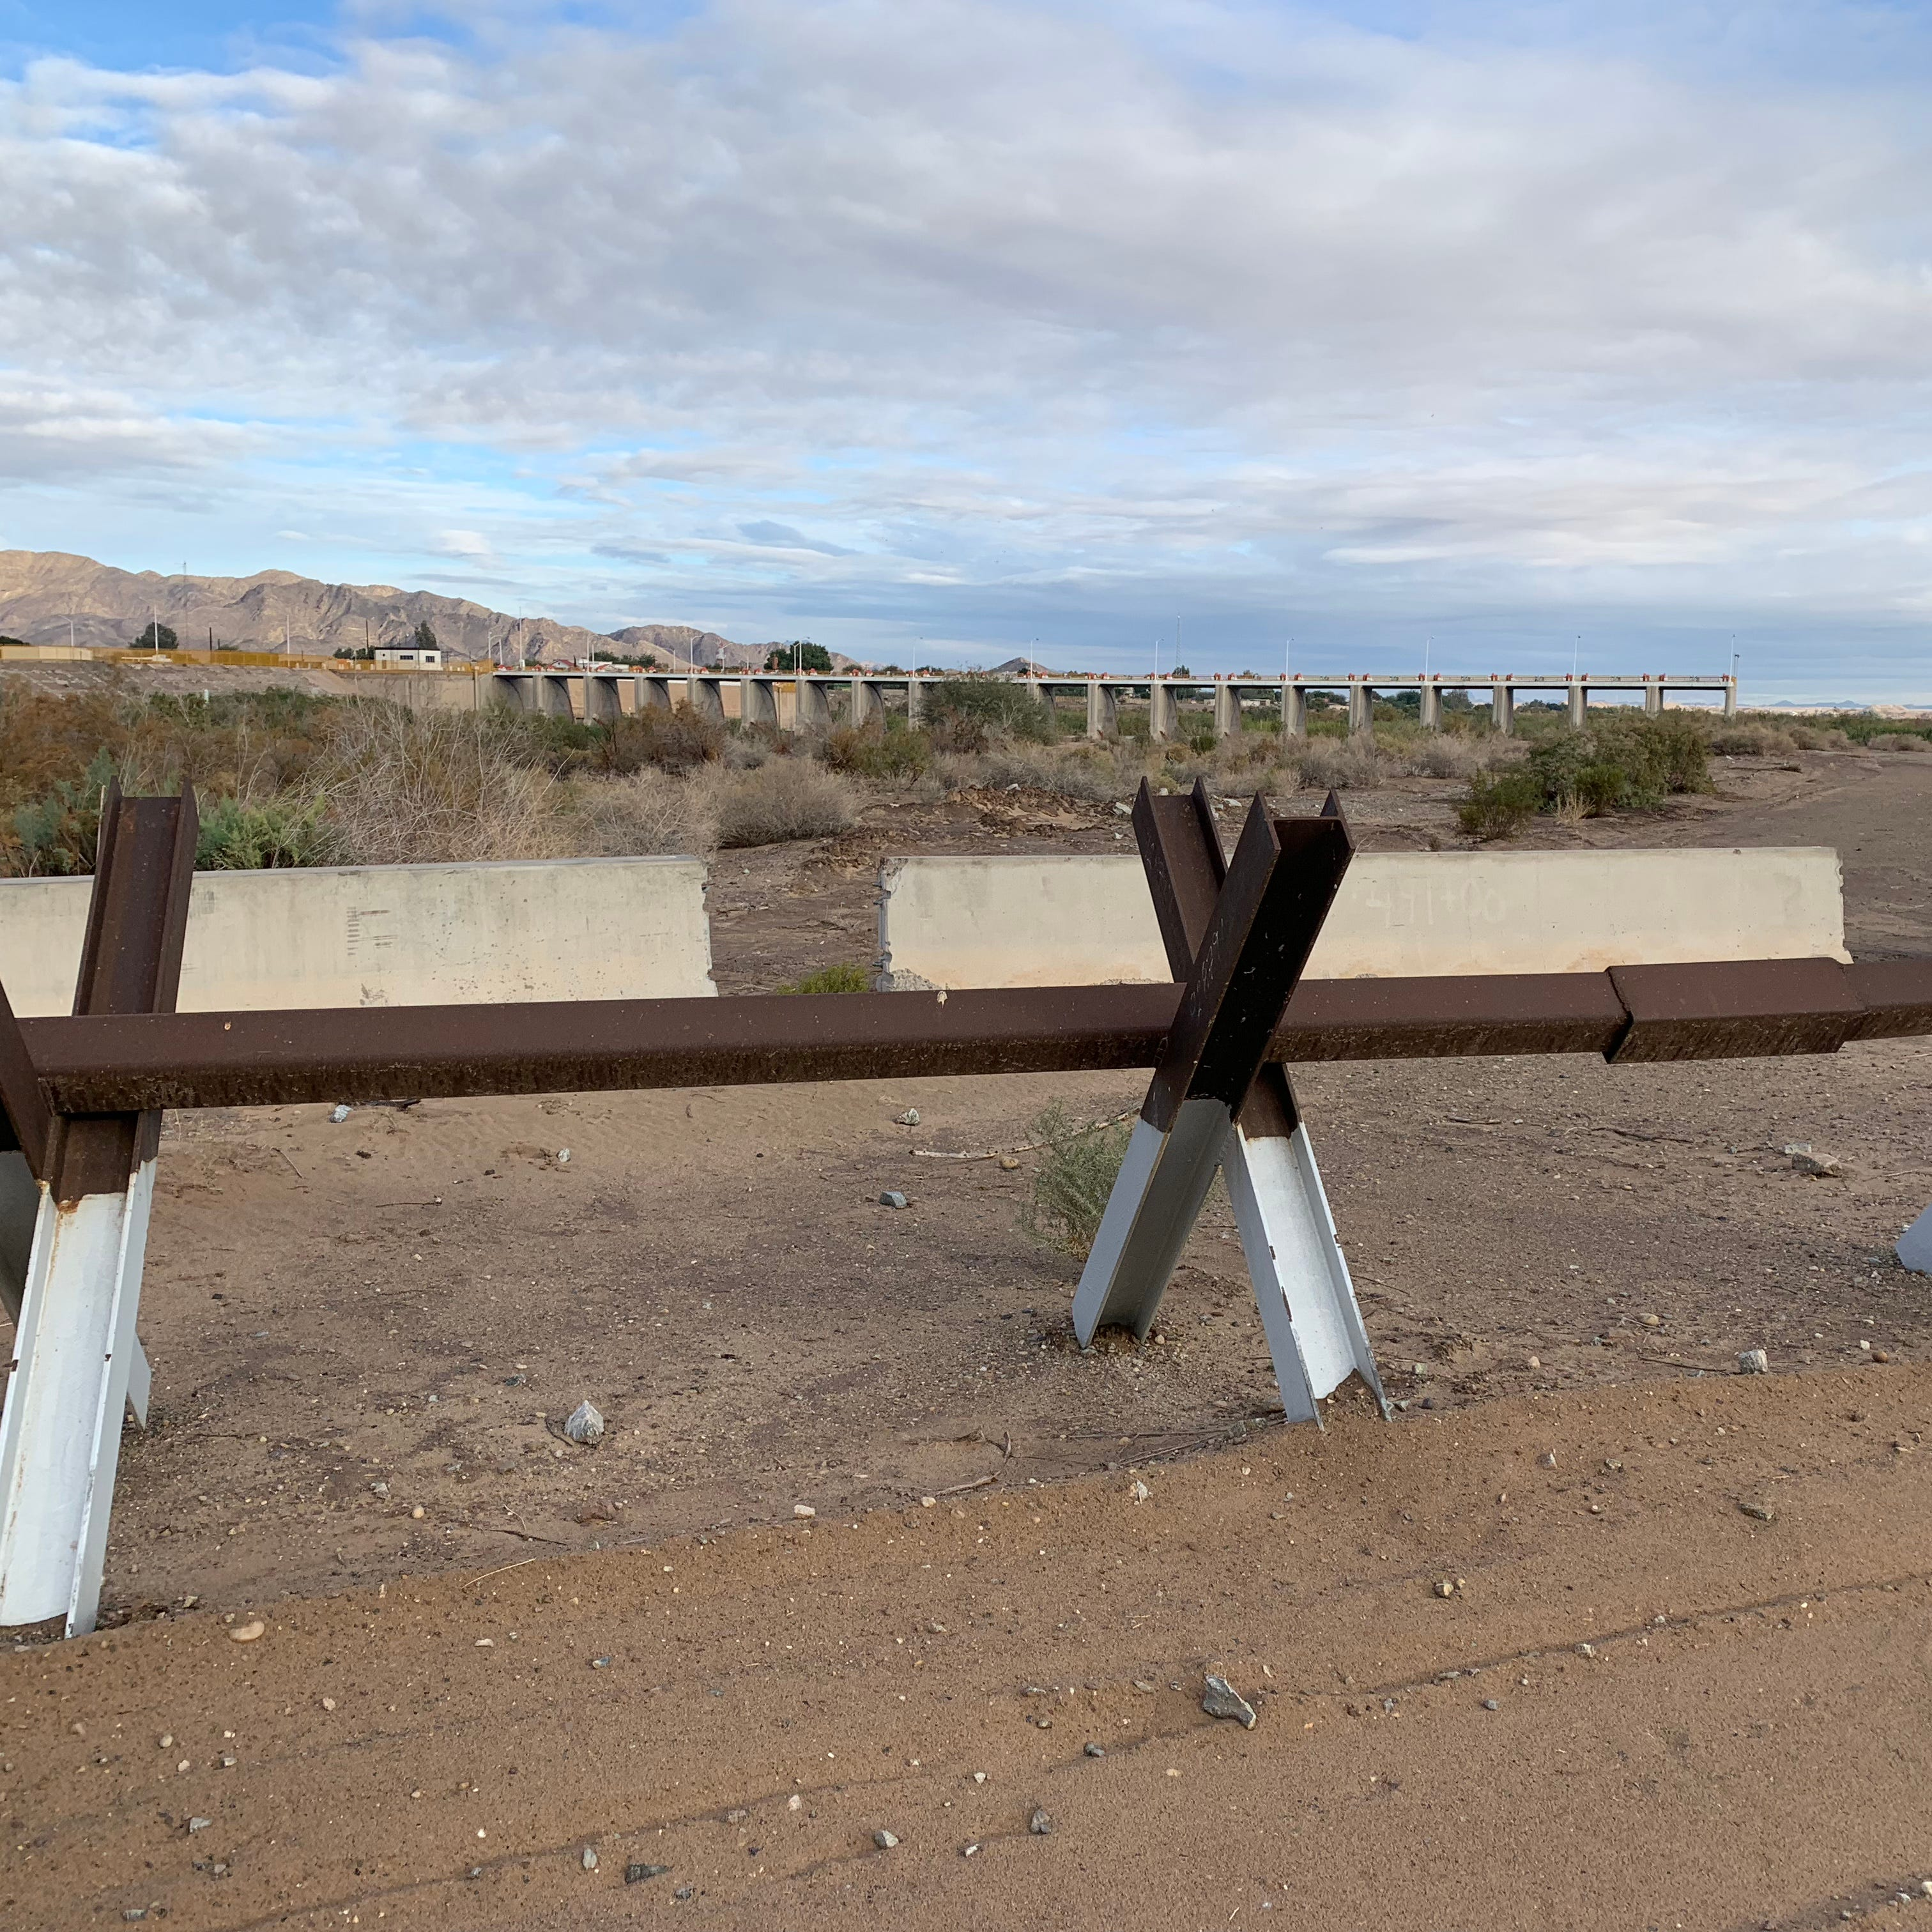 Migrants skirt border fortifications, cross largely unimpeded at the Colorado River